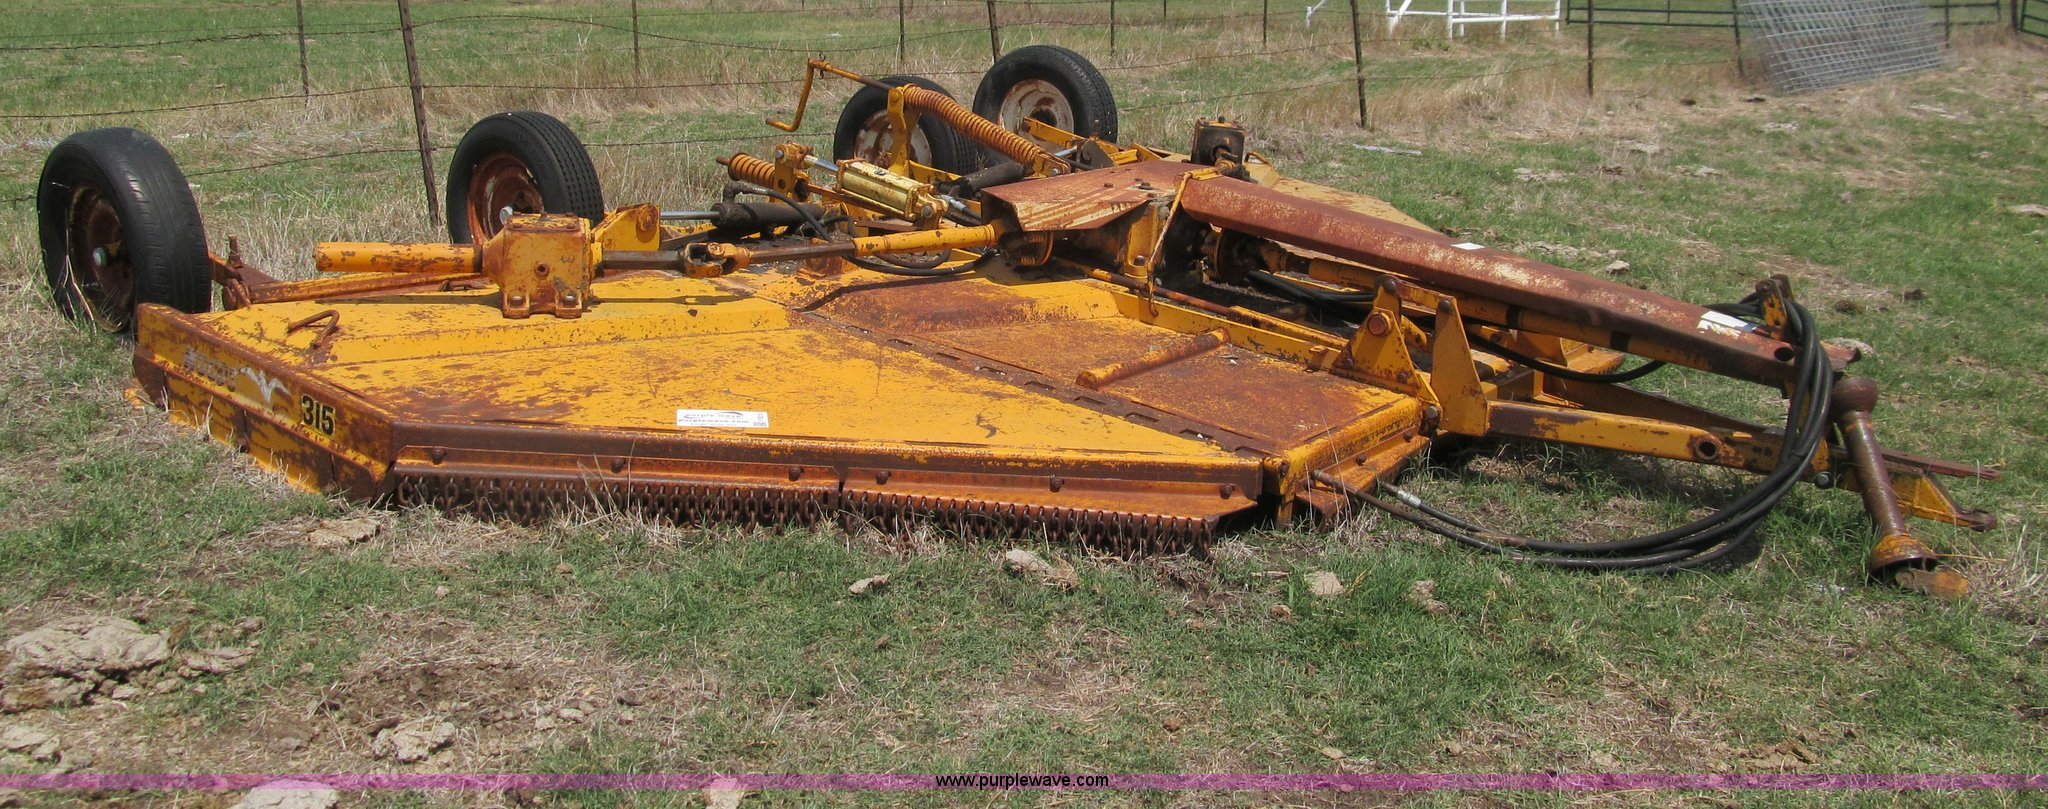 Woods 315 15 Batwing Mower Item F3015 Sold Wednesday